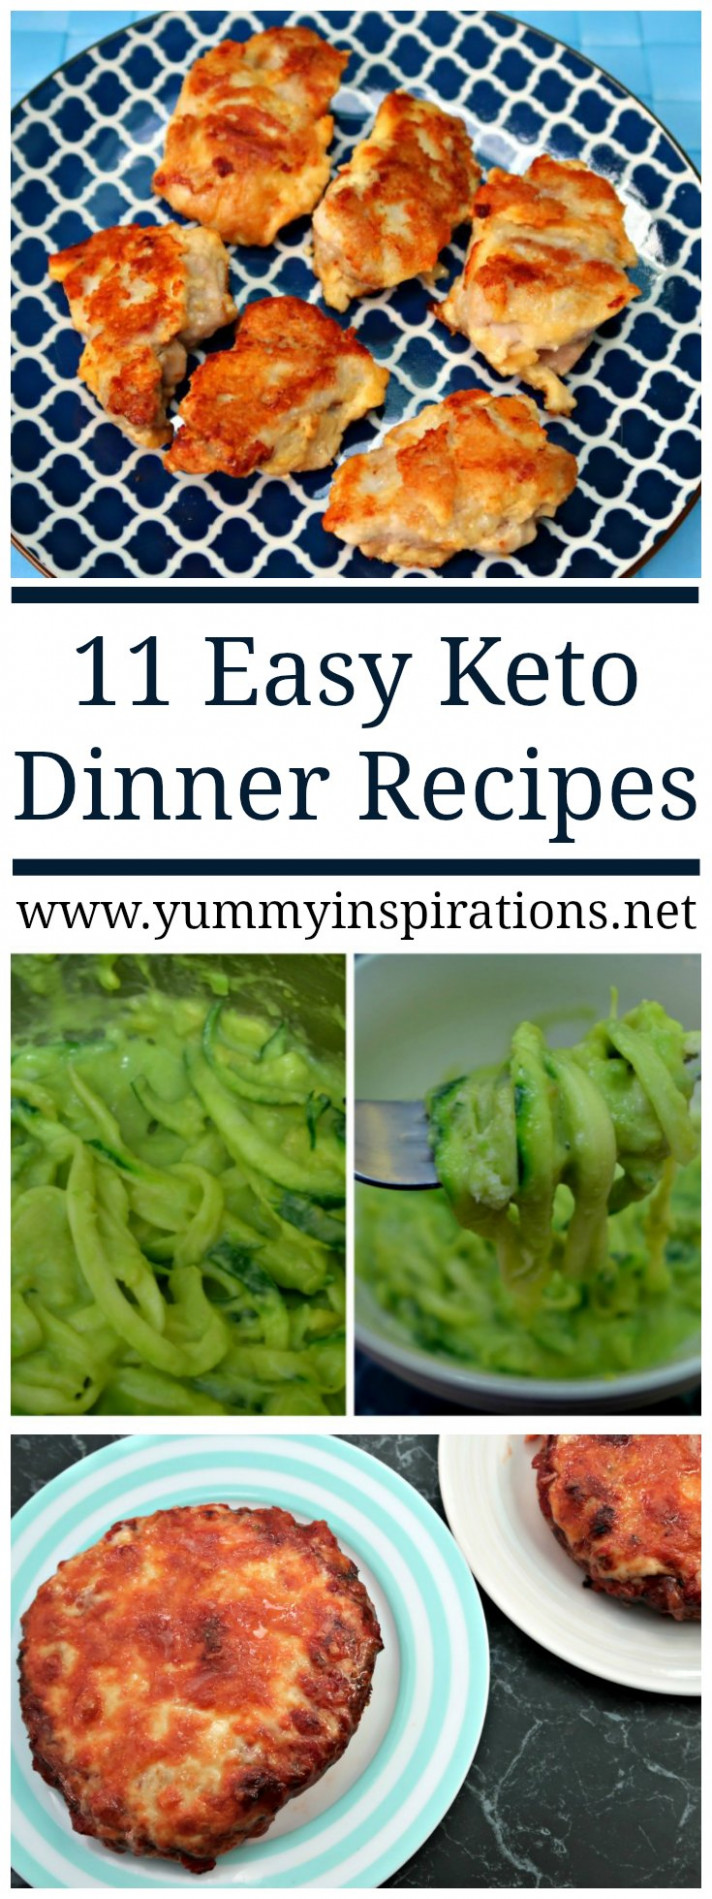 11 Easy Keto Dinner Recipes - Quick Low Carb Ketogenic ..